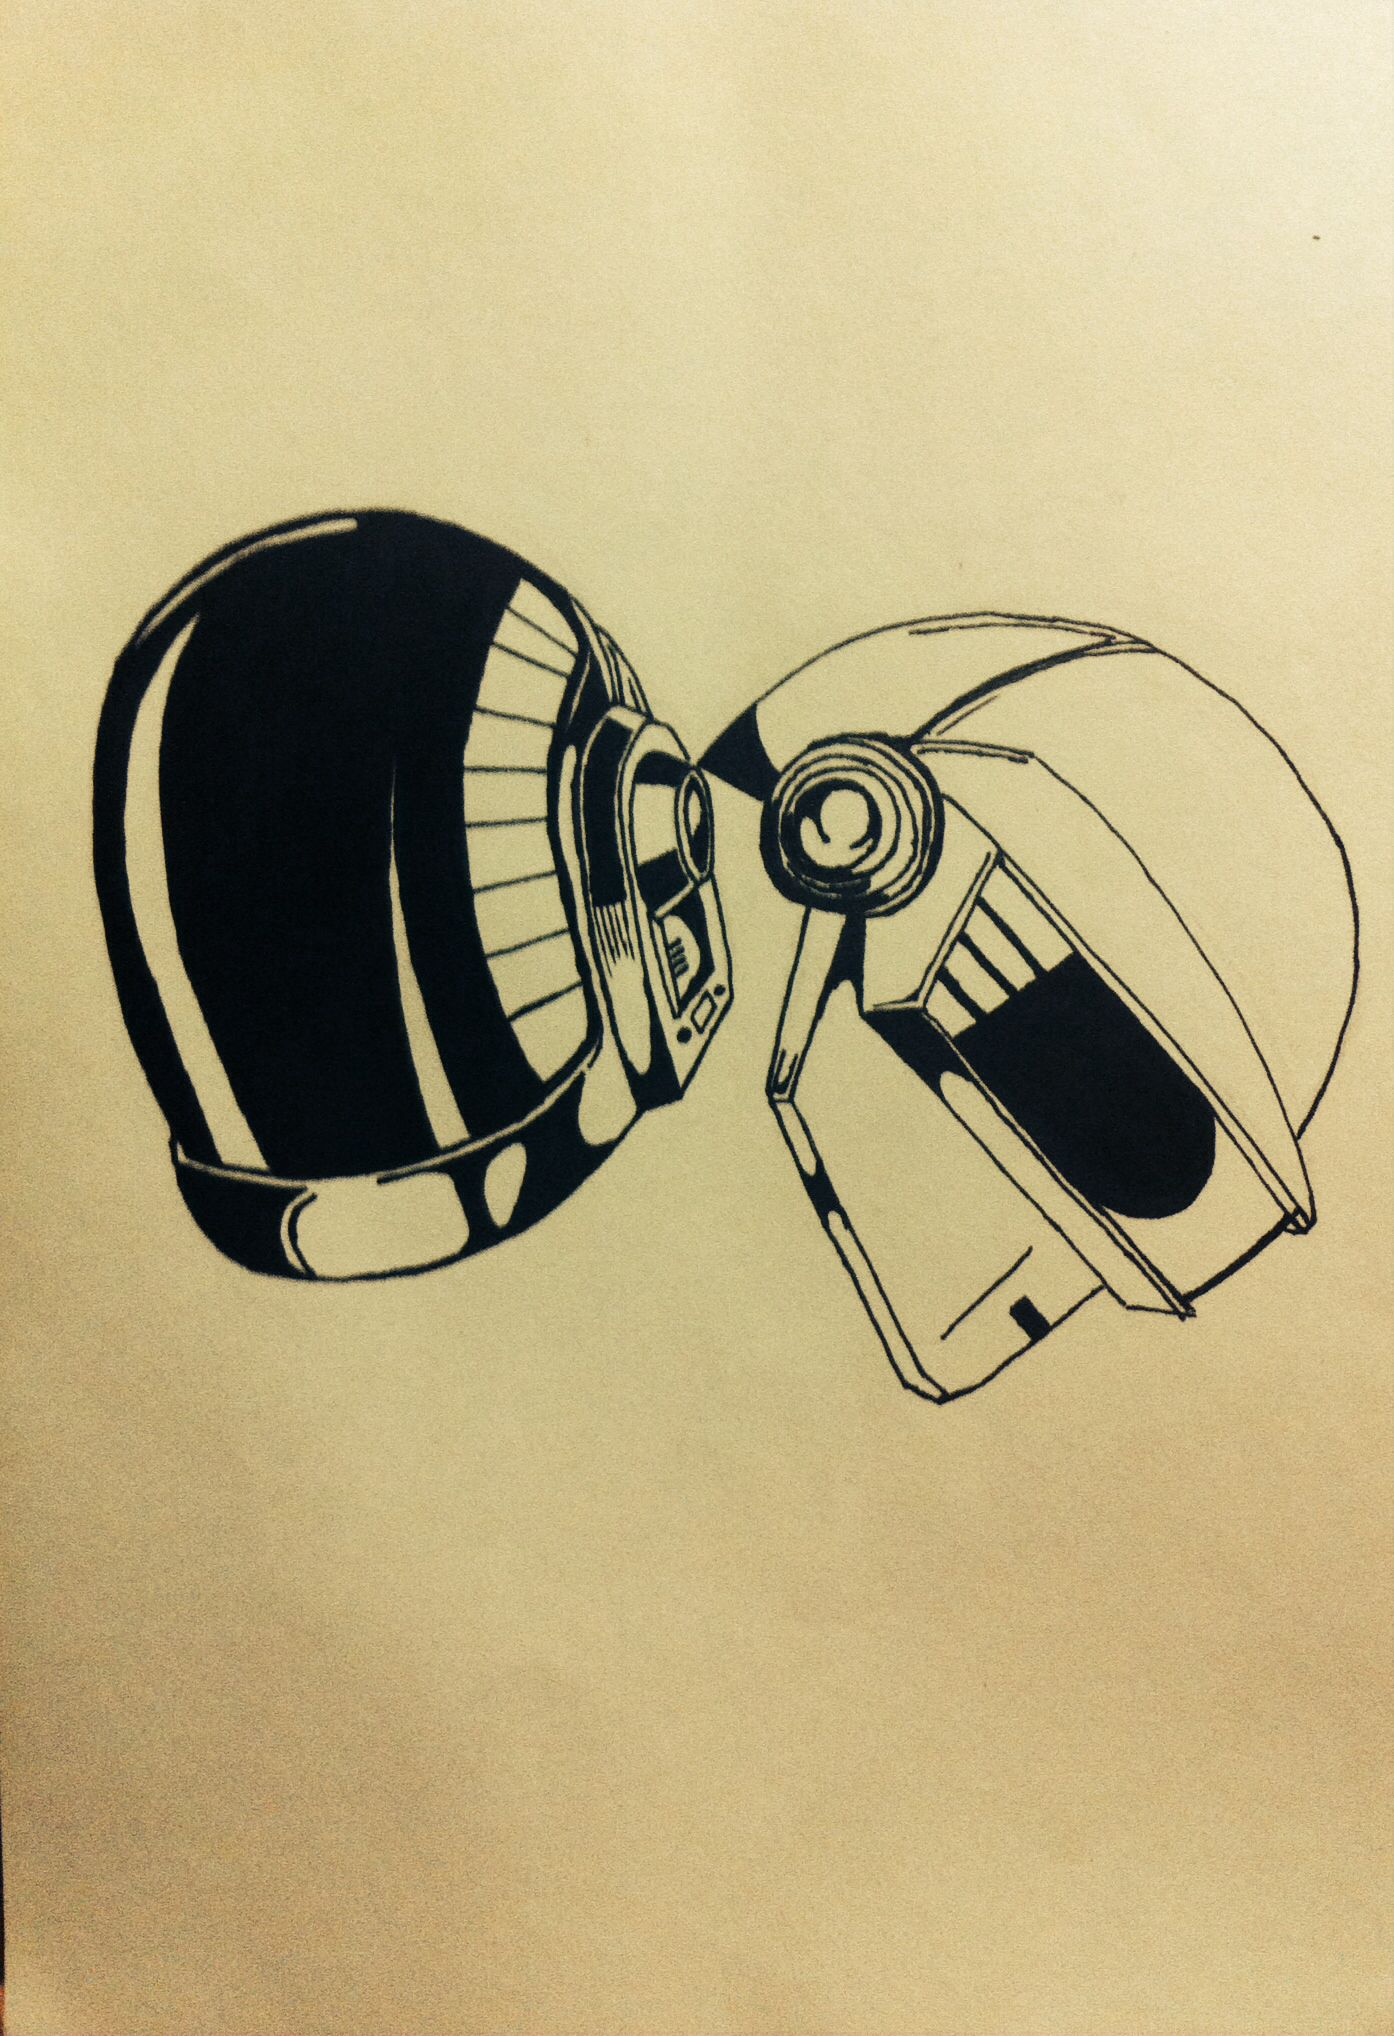 Daft Punk drawing | Daft Punk | Pinterest | Daft punk, Punk and ...